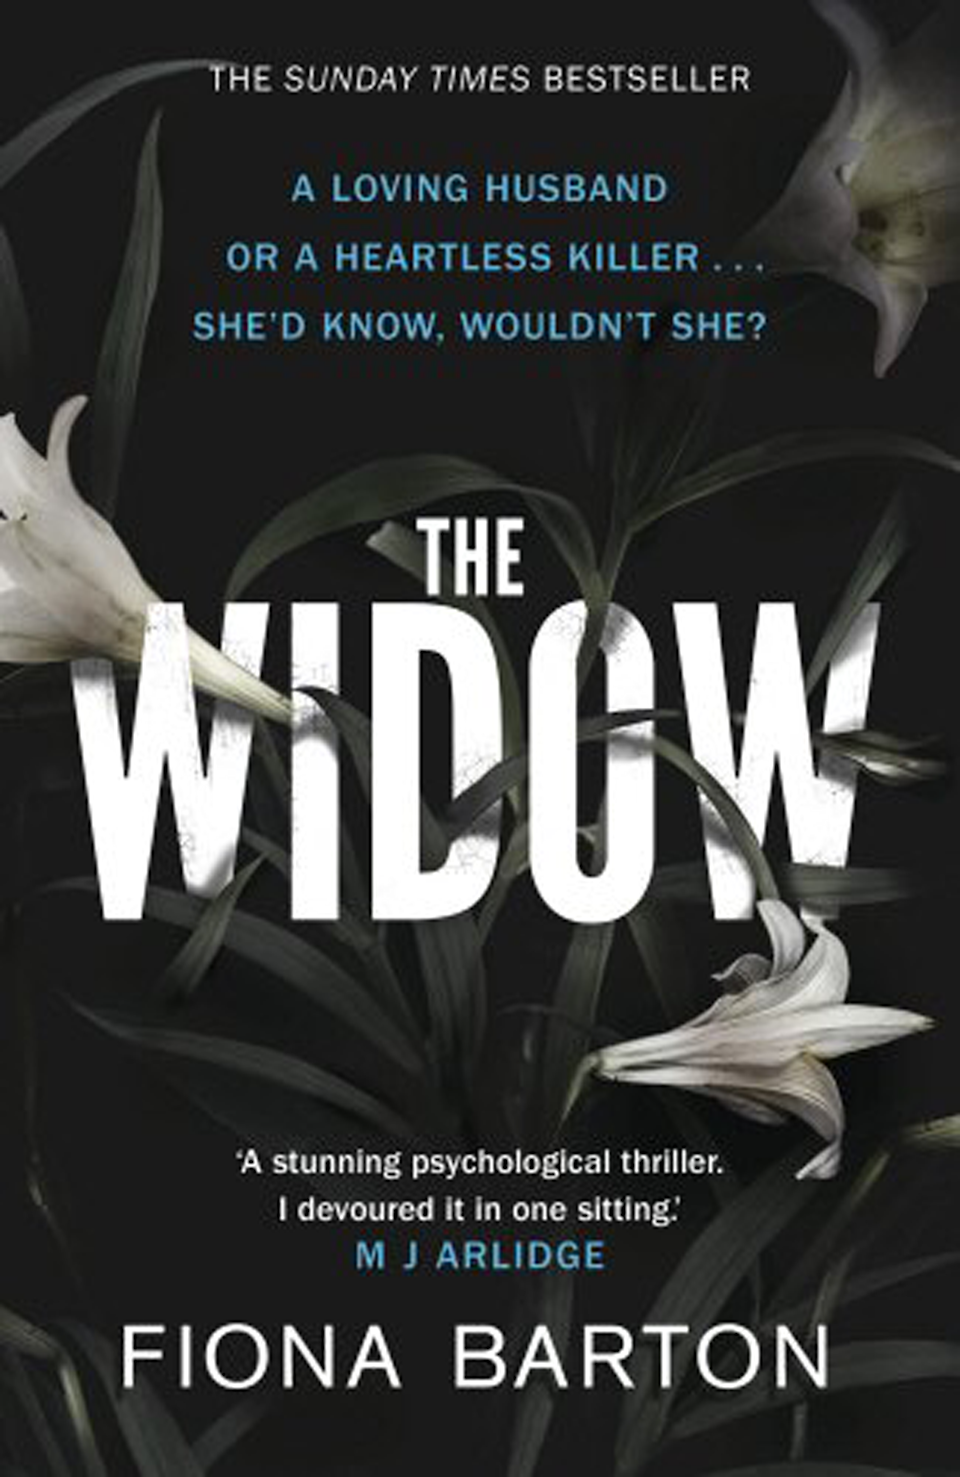 """<p><em><strong>The Widow</strong></em></p><p>By Fiona Barton</p><p>This is the story we don't often hear. What's it like being married to the man on all the front pages, accused of unimaginable evil? Jean Taylor's life and relationship were great until her husband became that """"monster"""". But now he's dead and she's alone for the first time, free to tell her story in her own way.</p><p><em>The Widow</em> is the fastest-selling debut hardback novel since <em>The Girl on the Train</em> and has already been optioned for TV. </p>"""